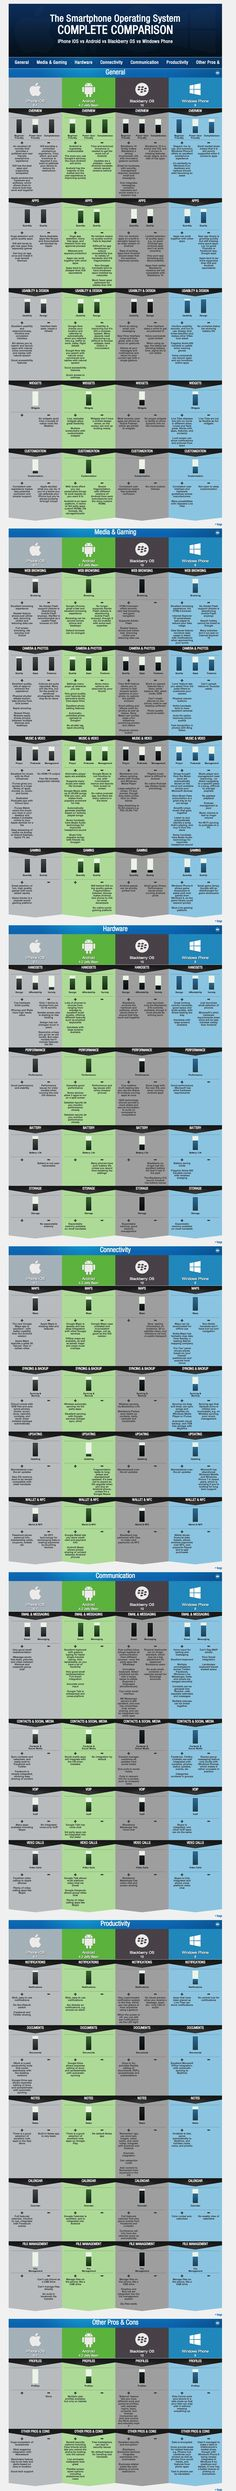 IOS, Android, BlackBerry and Windows Phone 8. @ Pinfographics